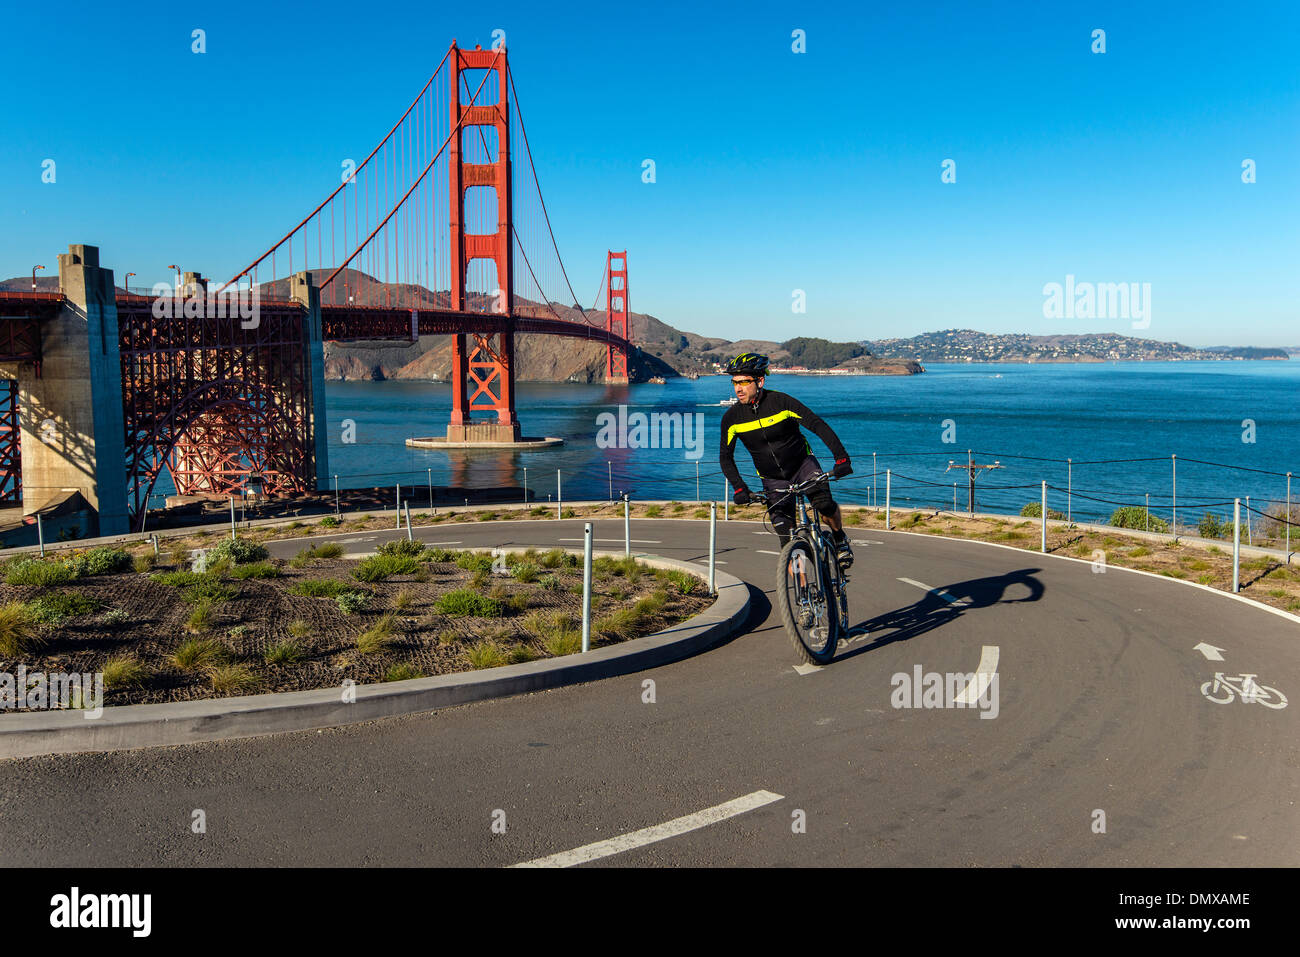 Cyclist riding his mountain bike on a bike lane with Golden gate suspension bridge behind, San Francisco, California, - Stock Image